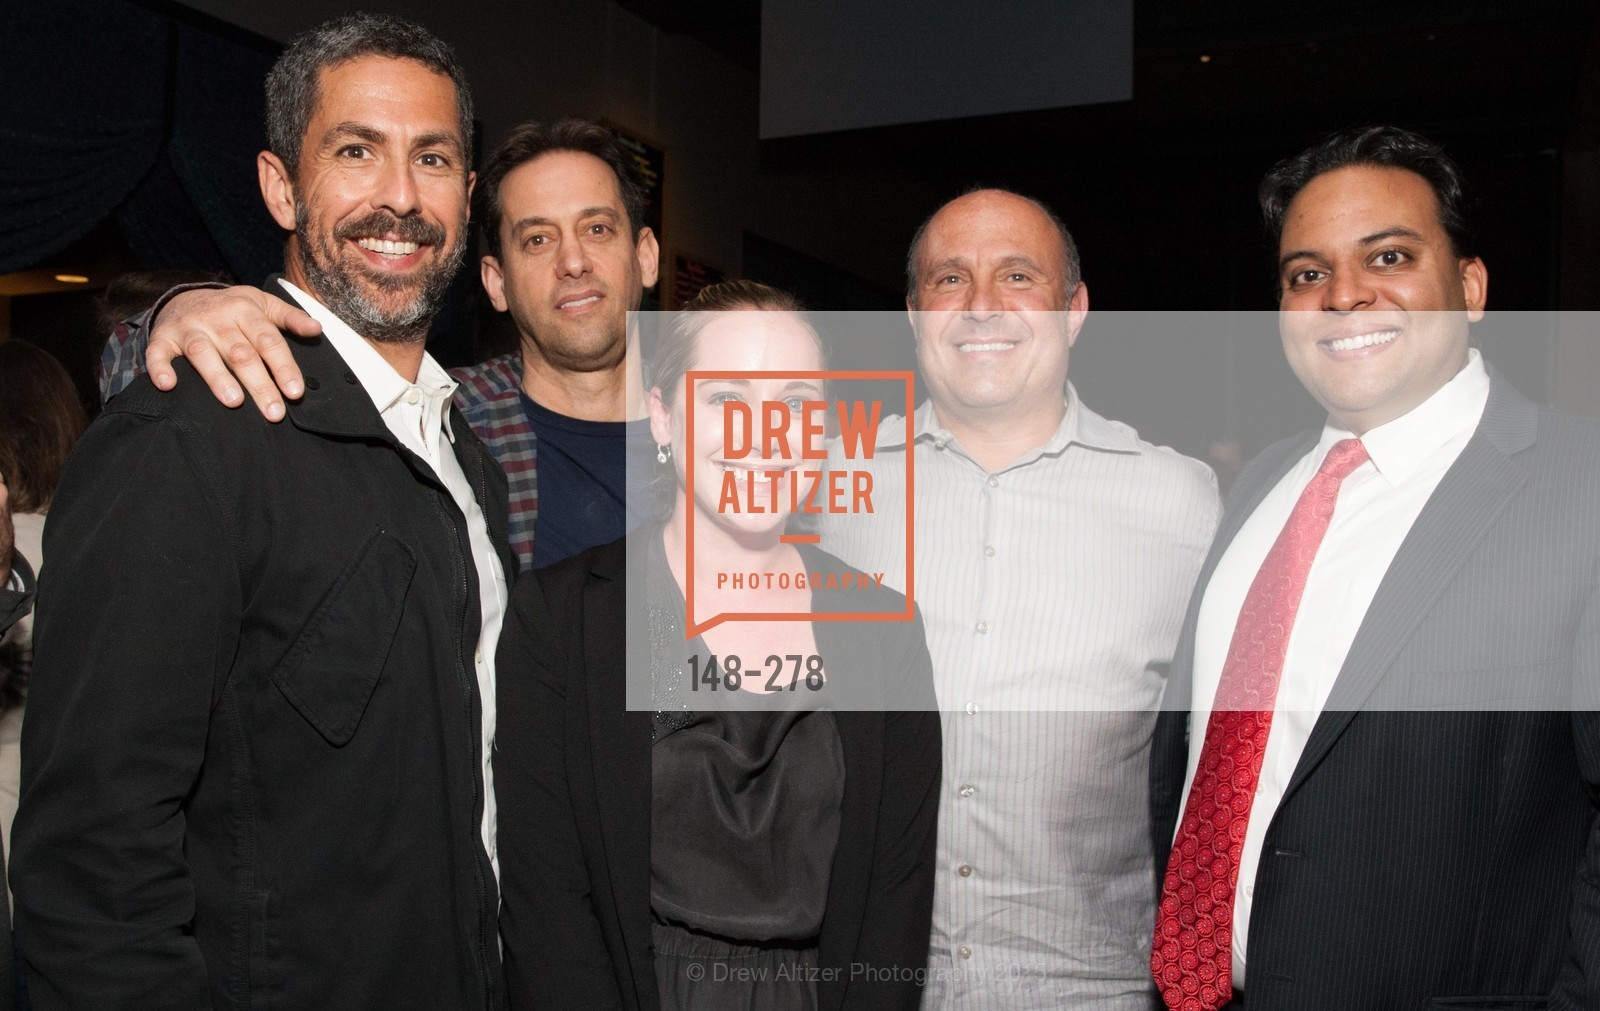 Alex Scutta, Shannon Bourne, Paul Goldstein, Adam Berman, Kaushik Roy, San Francisco 2.0 Premiere, Sundance Kabuki Cinema, September 3rd, 2015,Drew Altizer, Drew Altizer Photography, full-service agency, private events, San Francisco photographer, photographer california